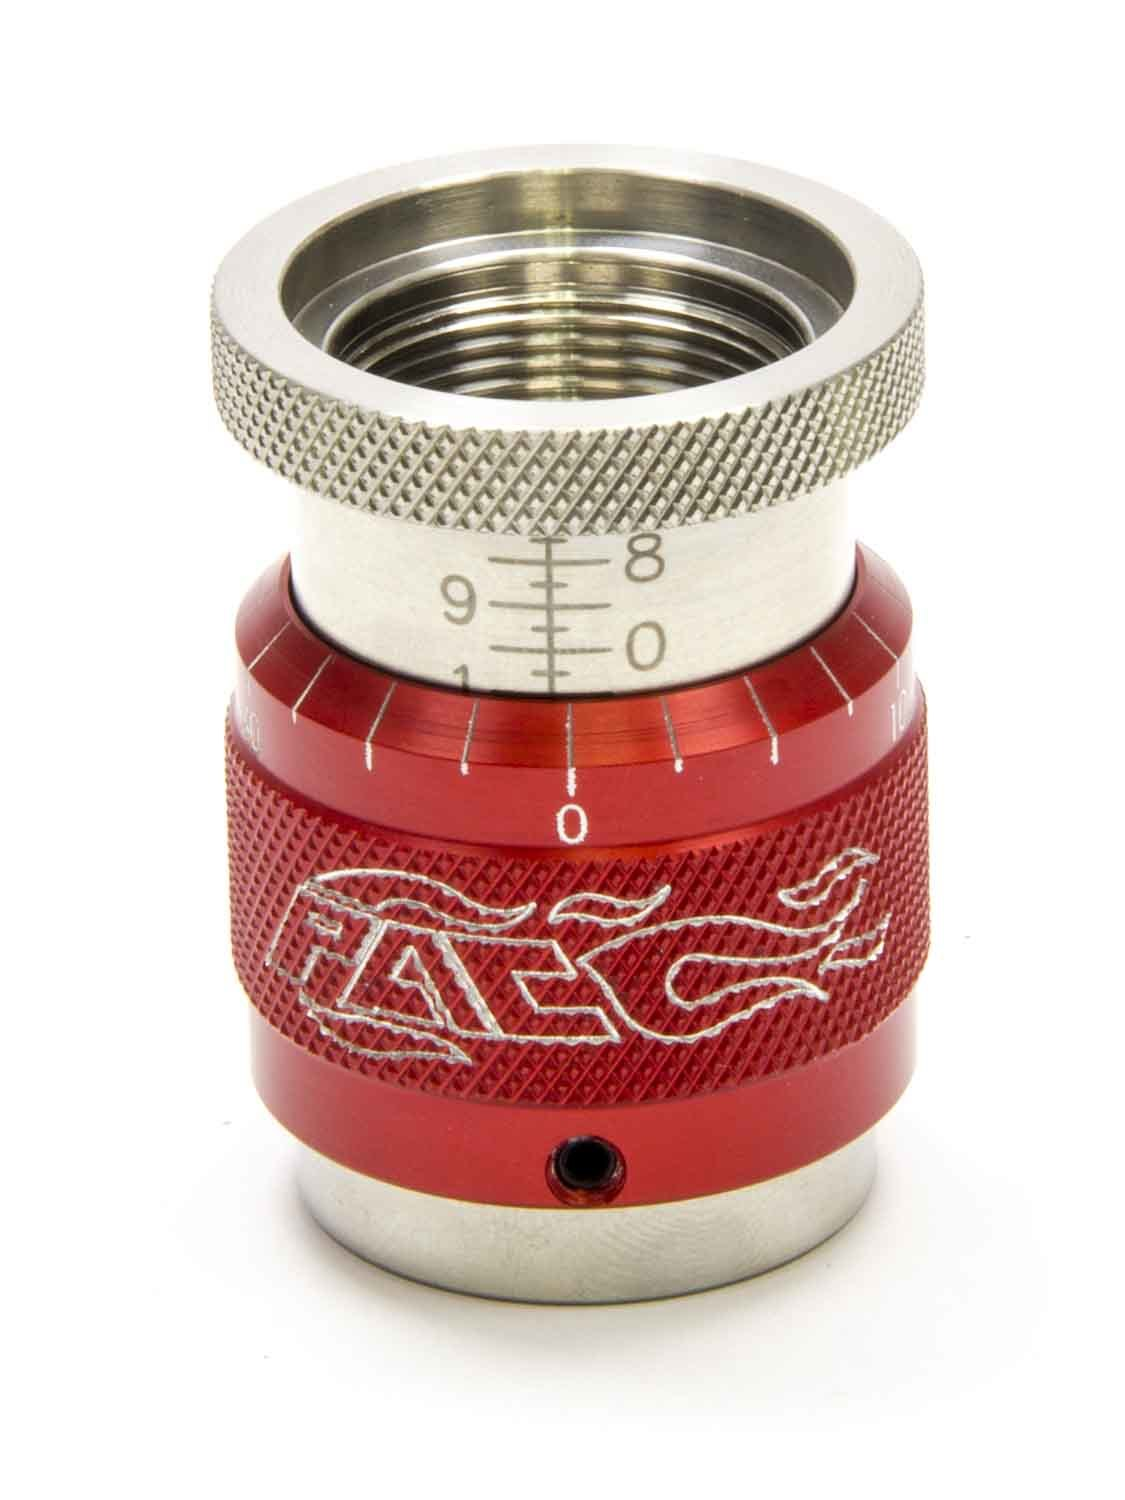 PAC Racing Springs PAC-T902 Valve Spring Height Gauge, 1.800-2.600 in Range, 0.001 in Scale, Red Anodized, Each